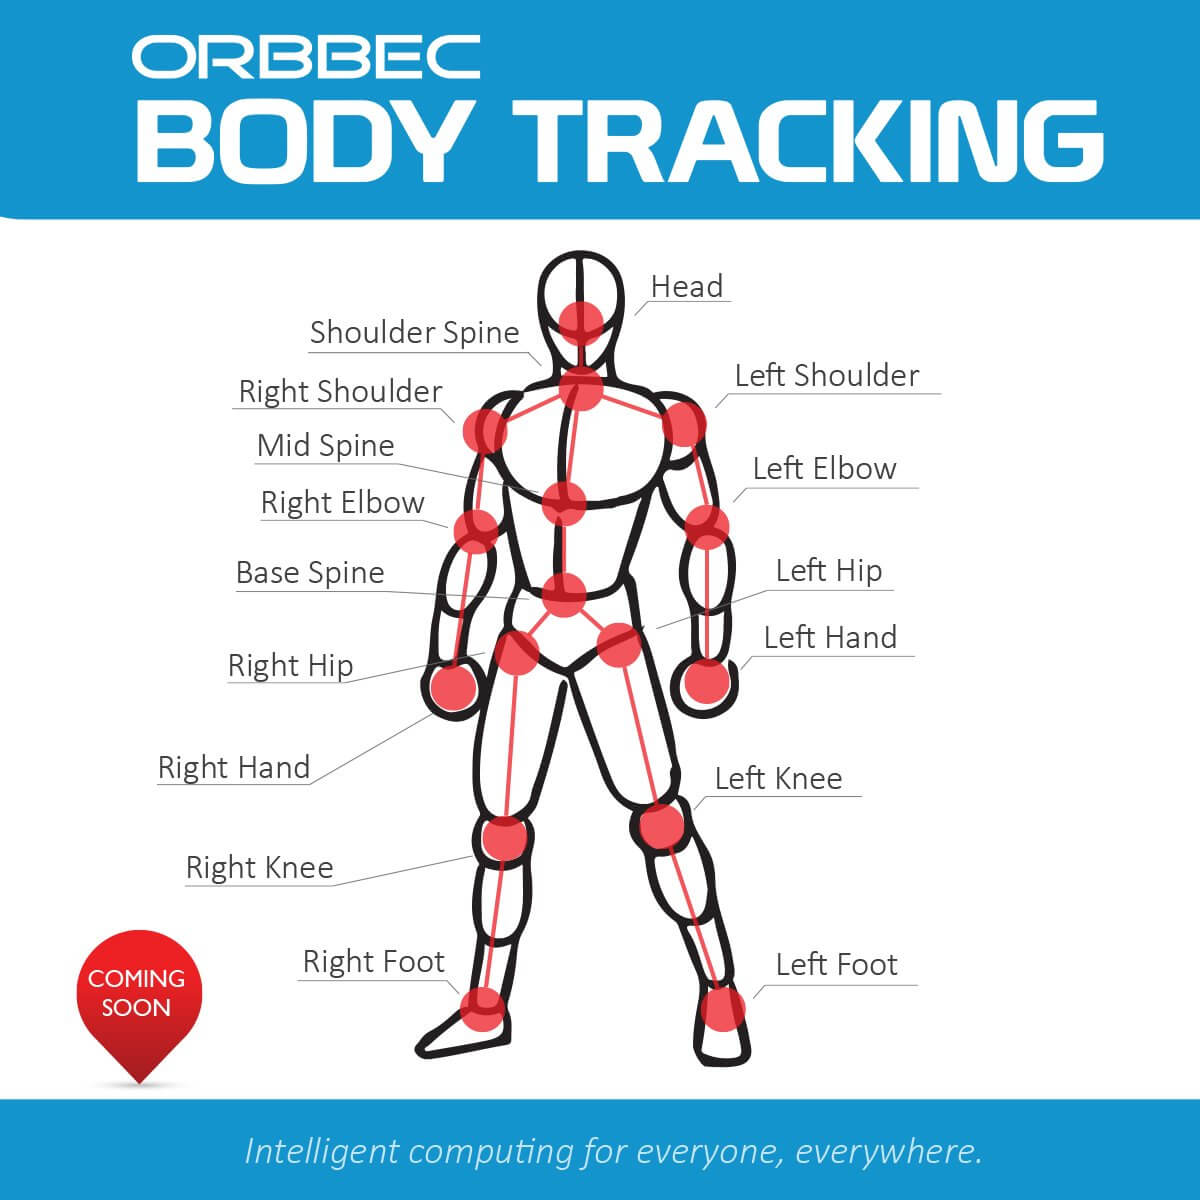 Orbbec Body Tracking SDK